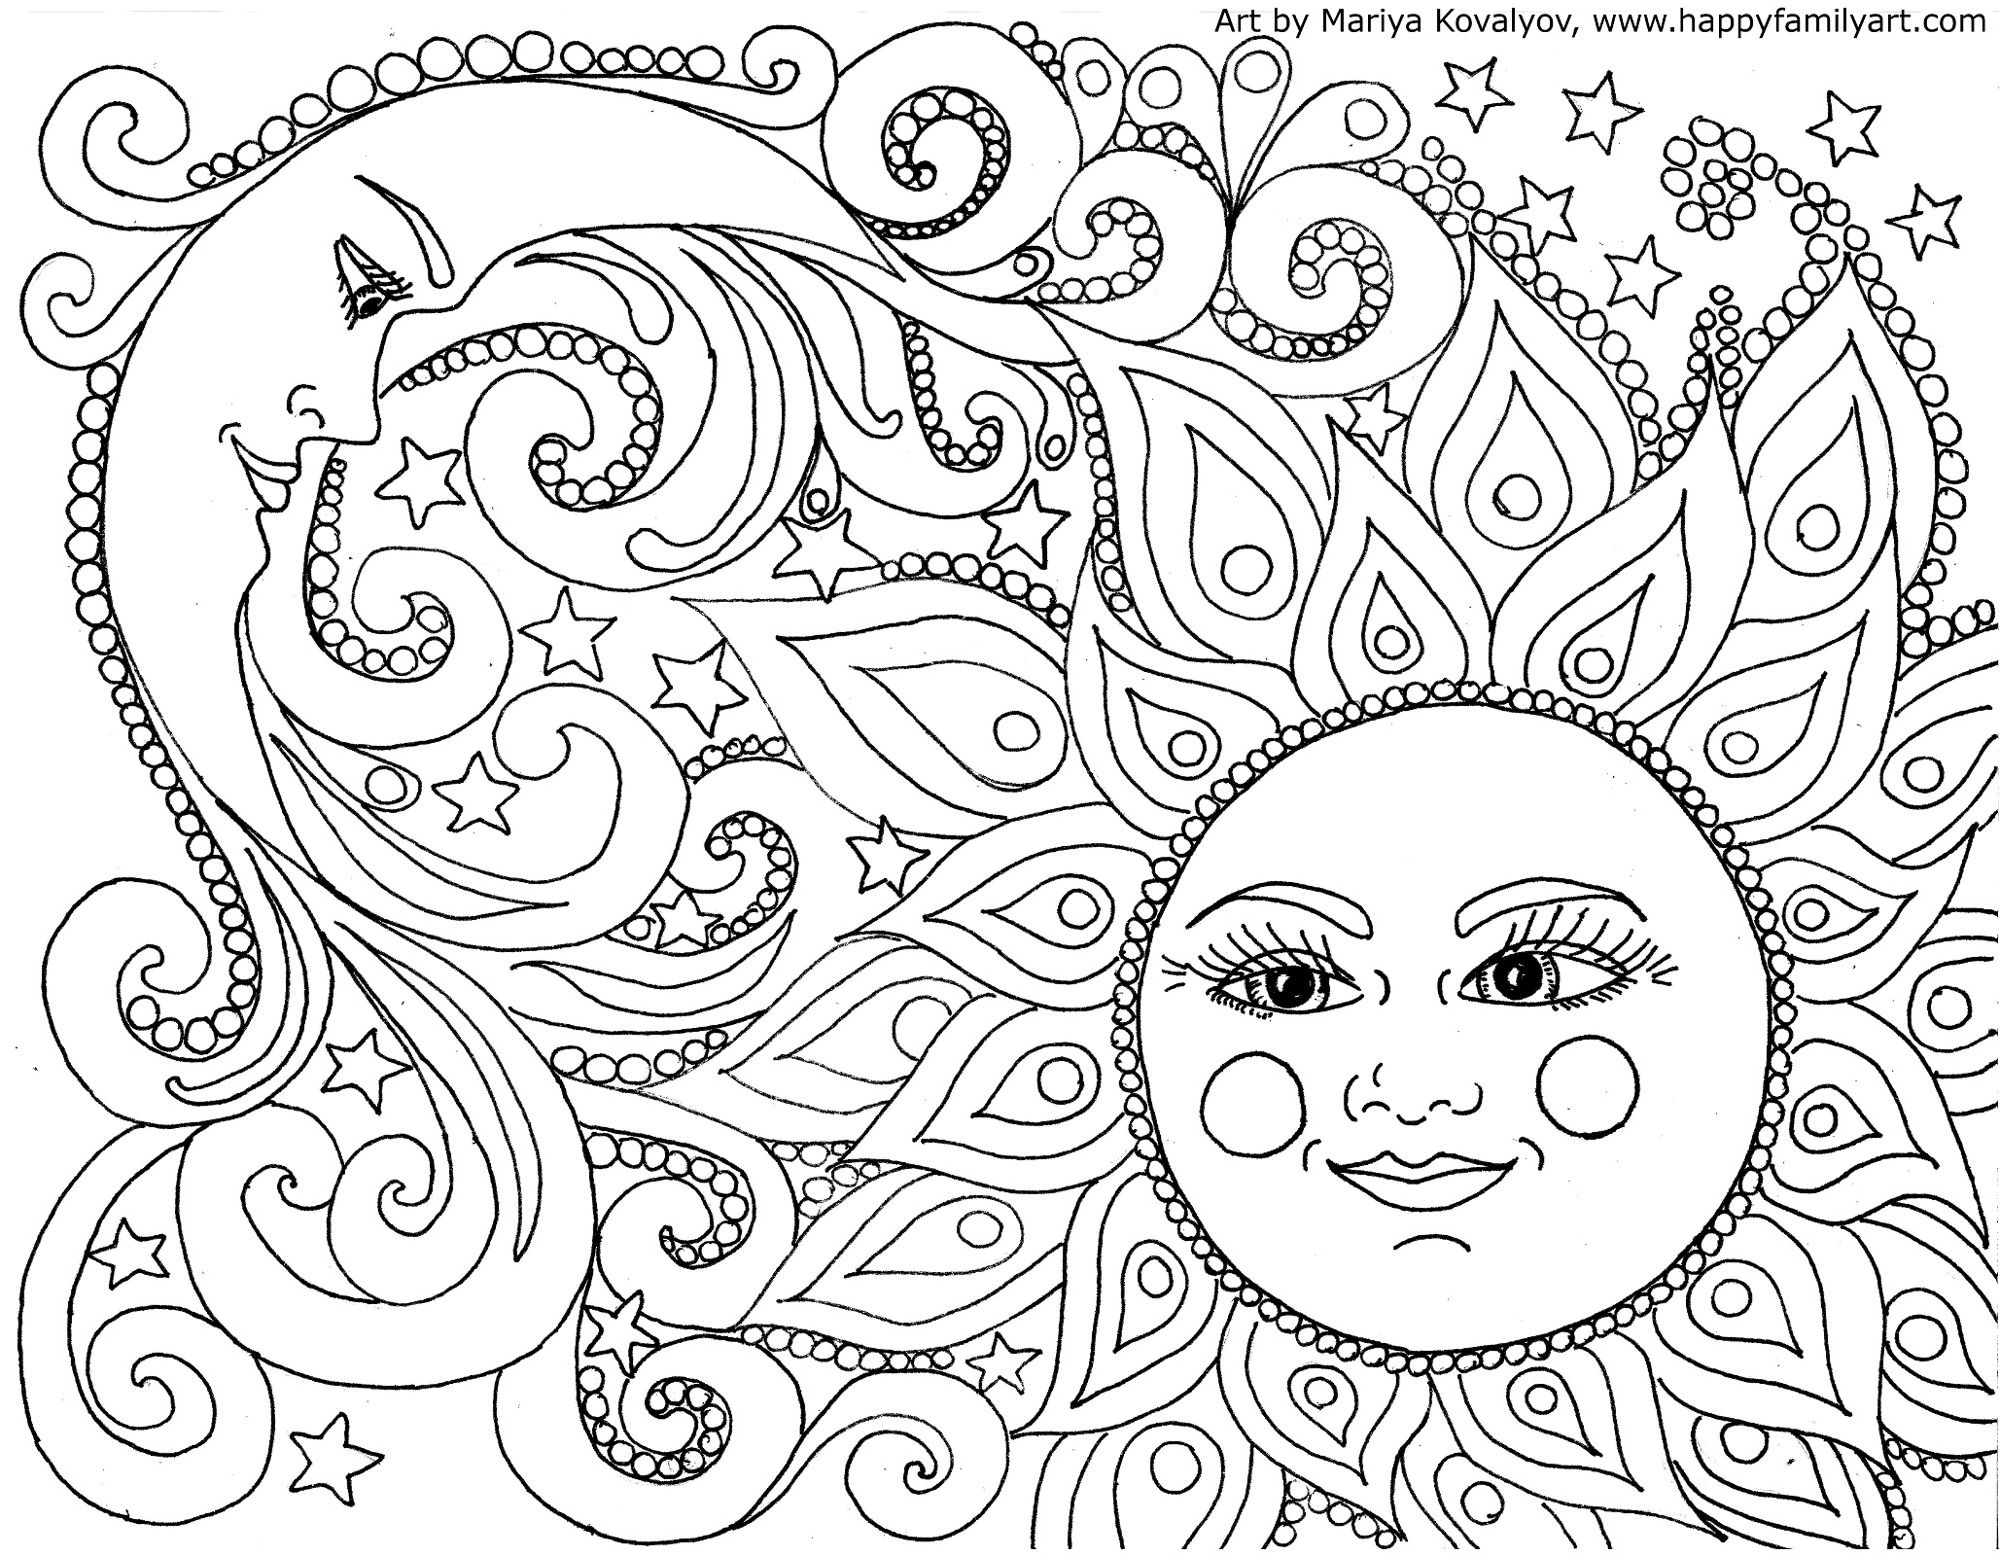 adult coloring pages i made many great fun and original coloring pages - Coloring Pages Adult